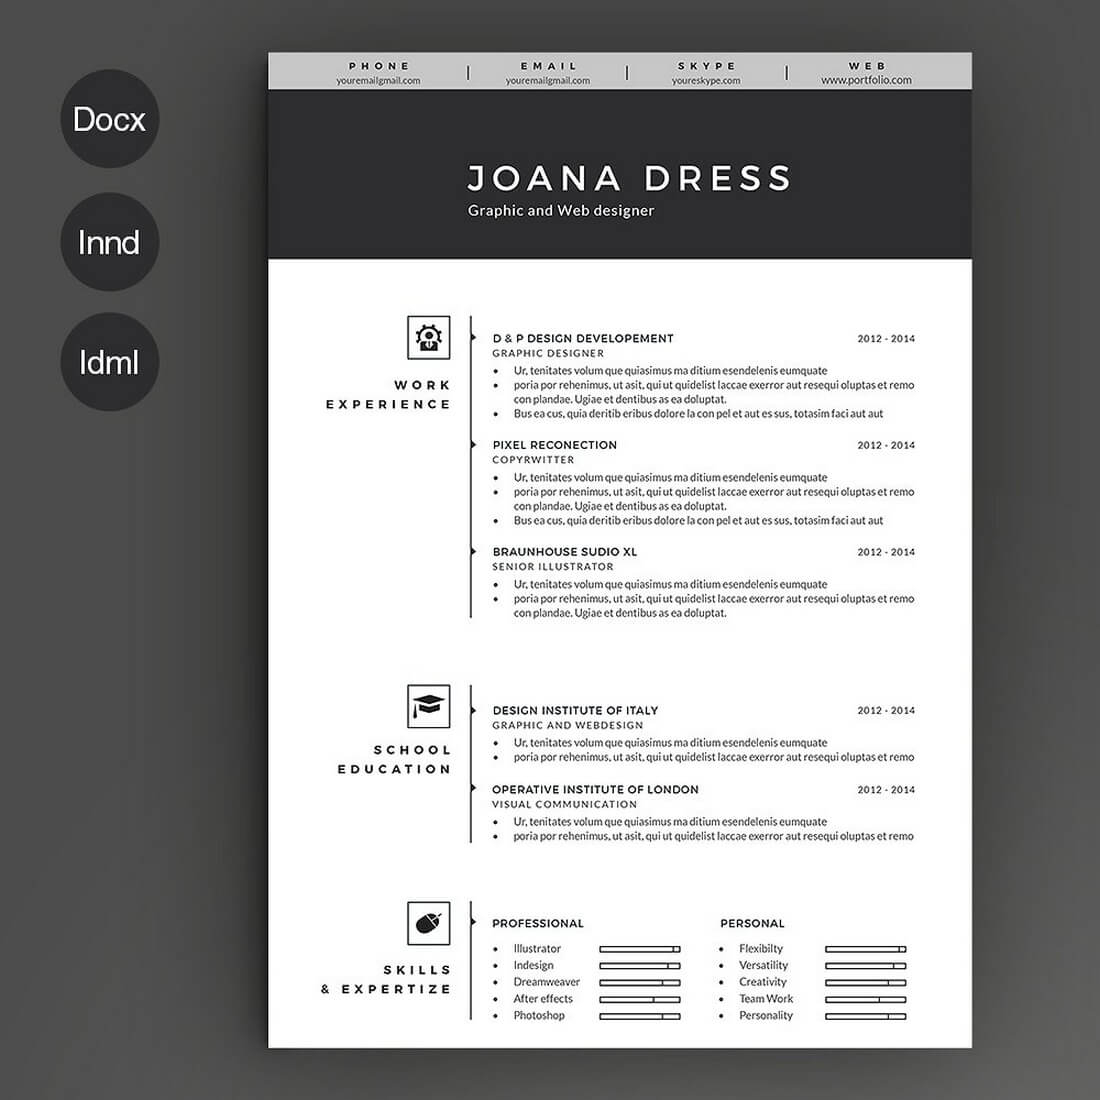 Black White Resume Template. creative resume templates free download for microsoft word graphic design resume template creative professional resume free. unique cv templates. free resume templates doc unusual design resume template doc 13 with resume template doc. designer resume template. unique resume templates 15 downloadable templates to use now